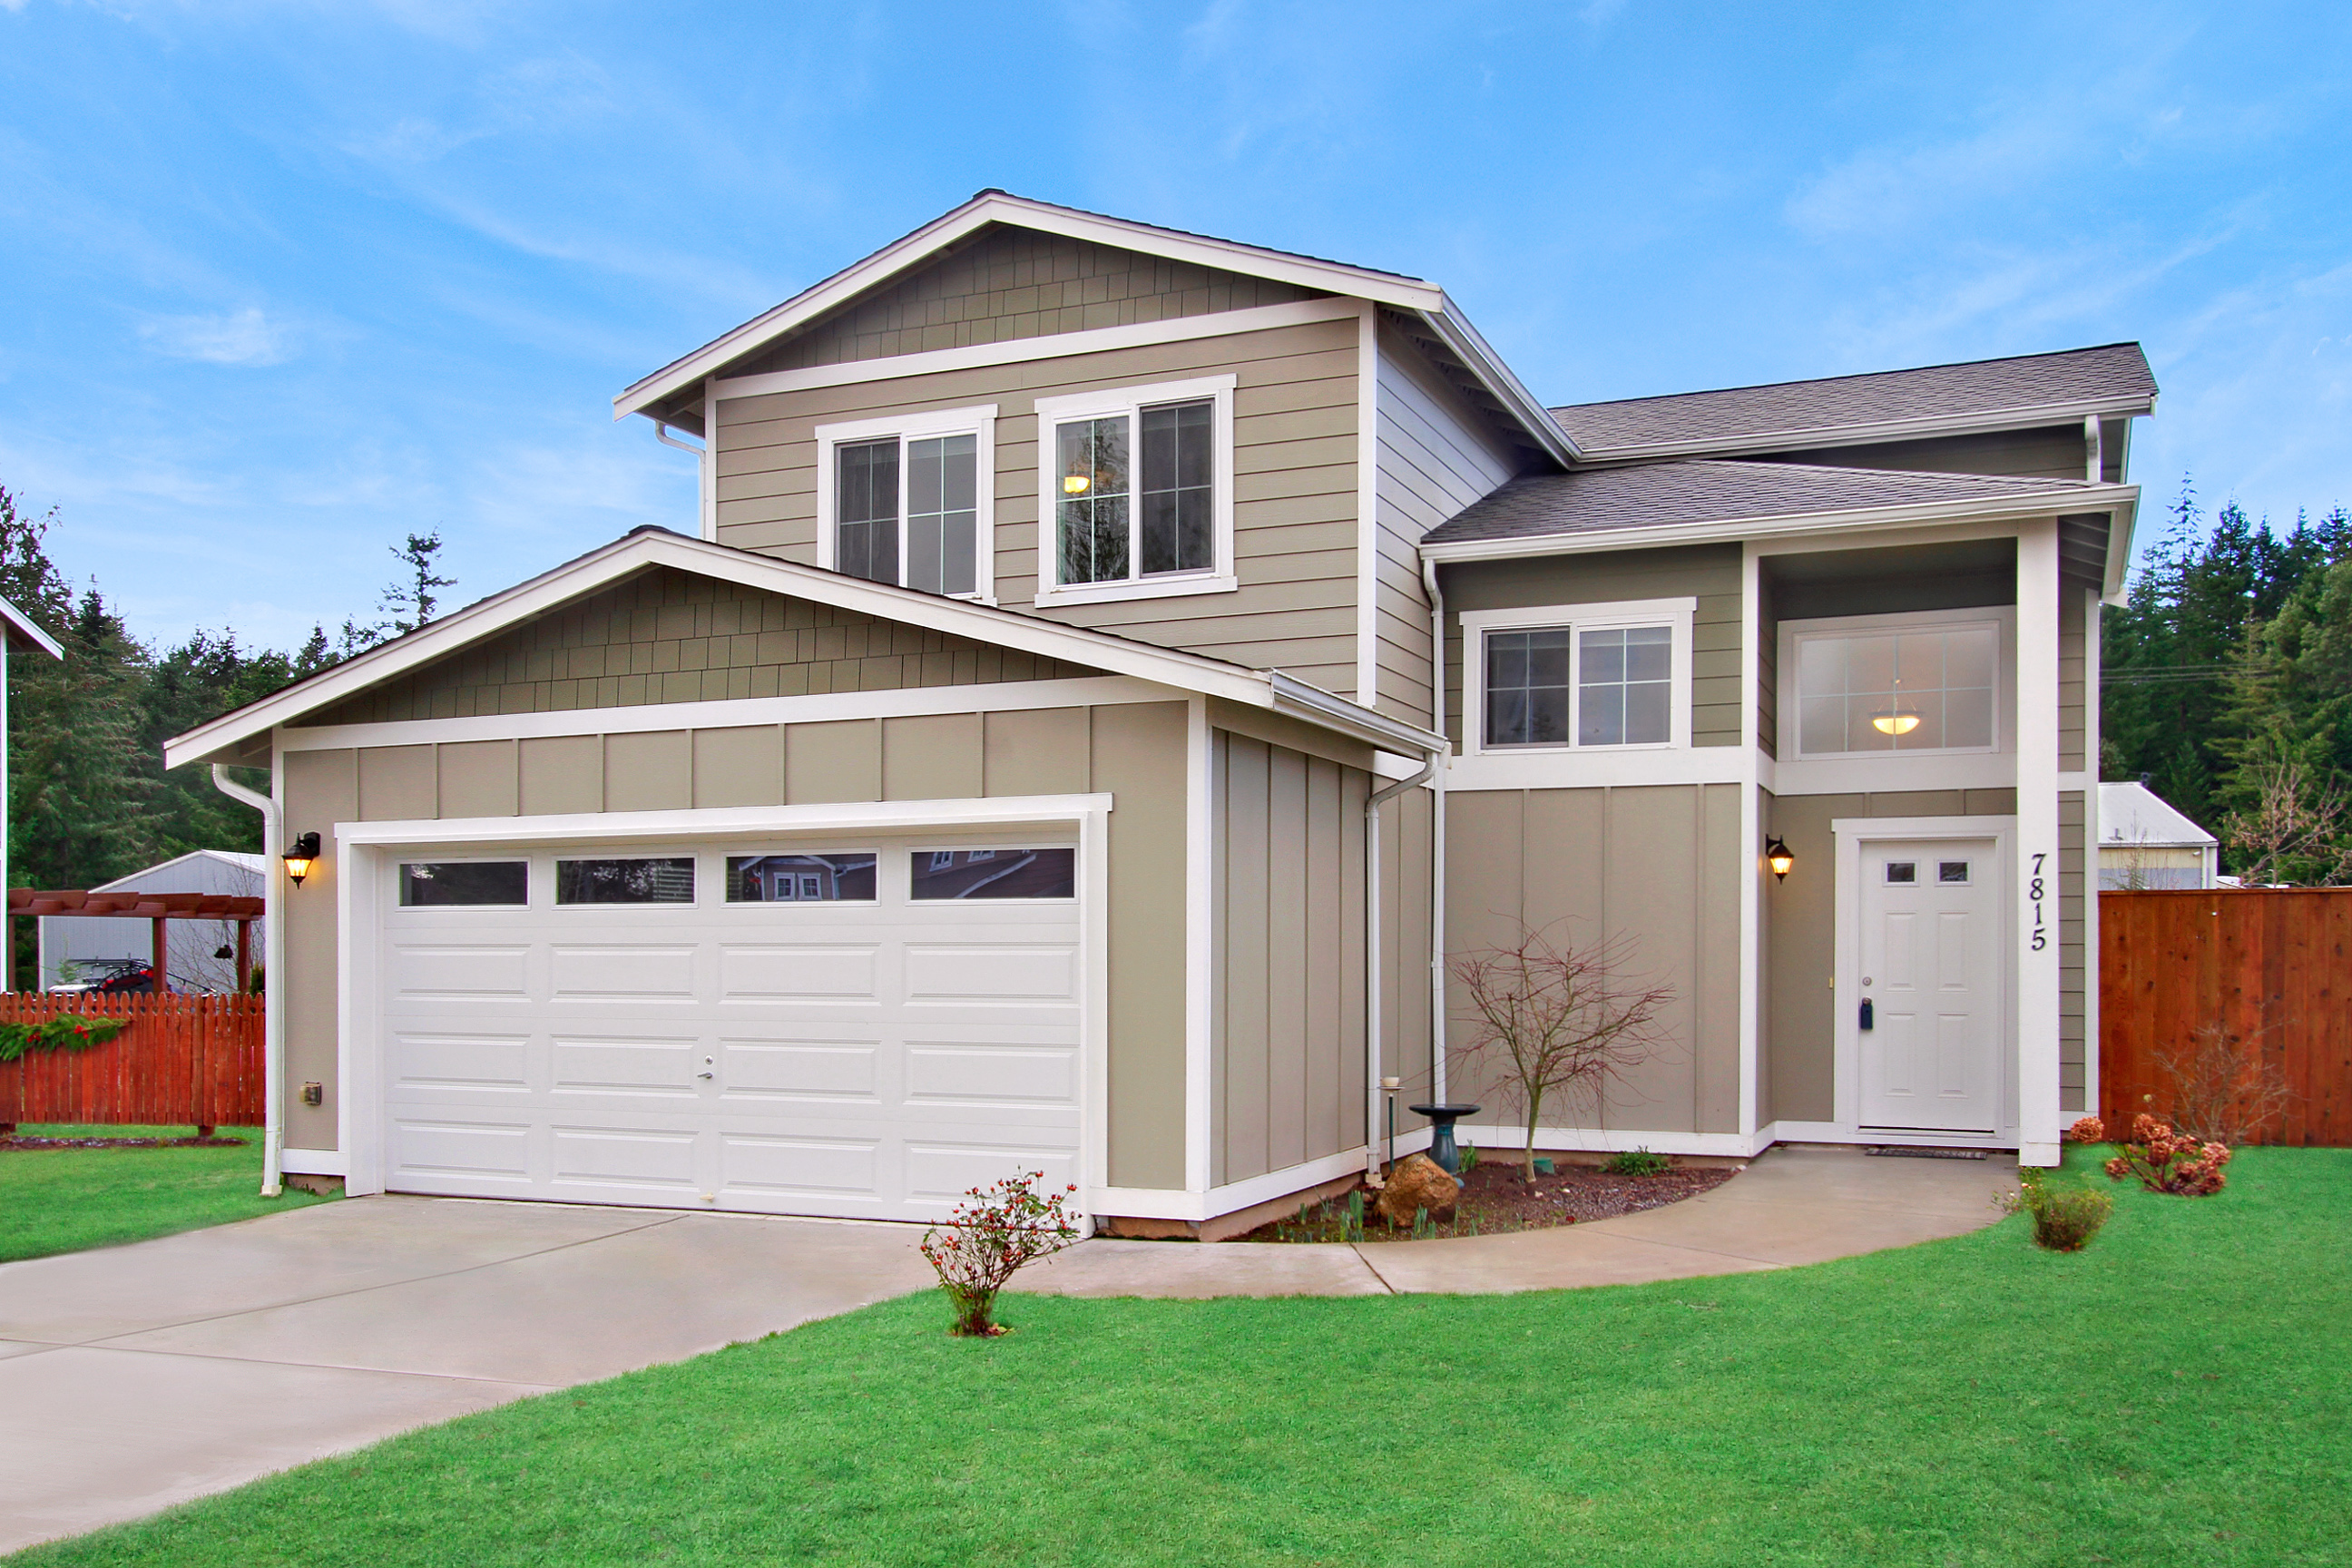 3 Bedroom Home In Silverdale Washington